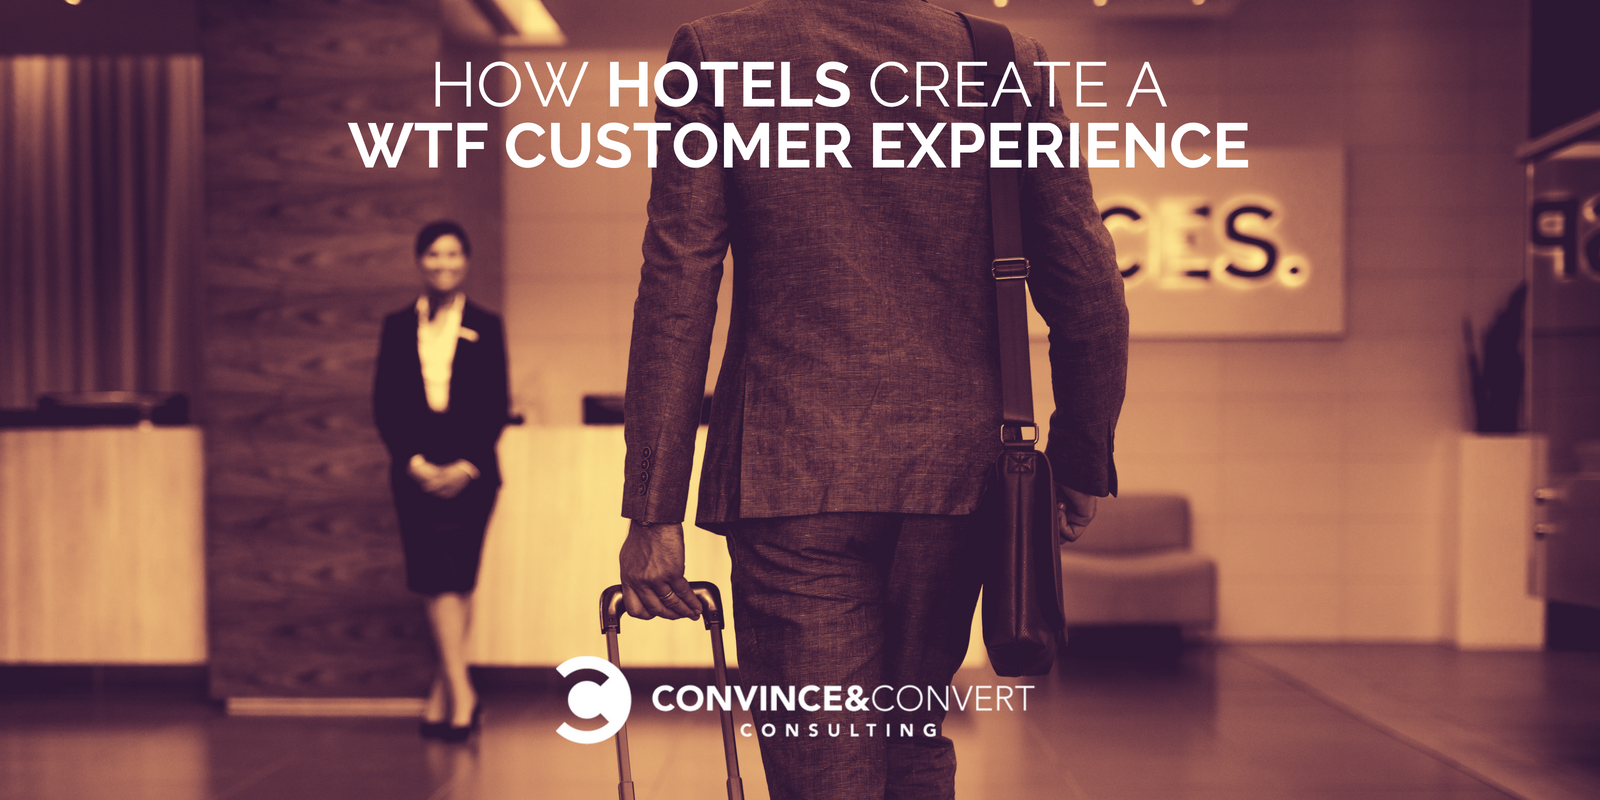 hotels create experience